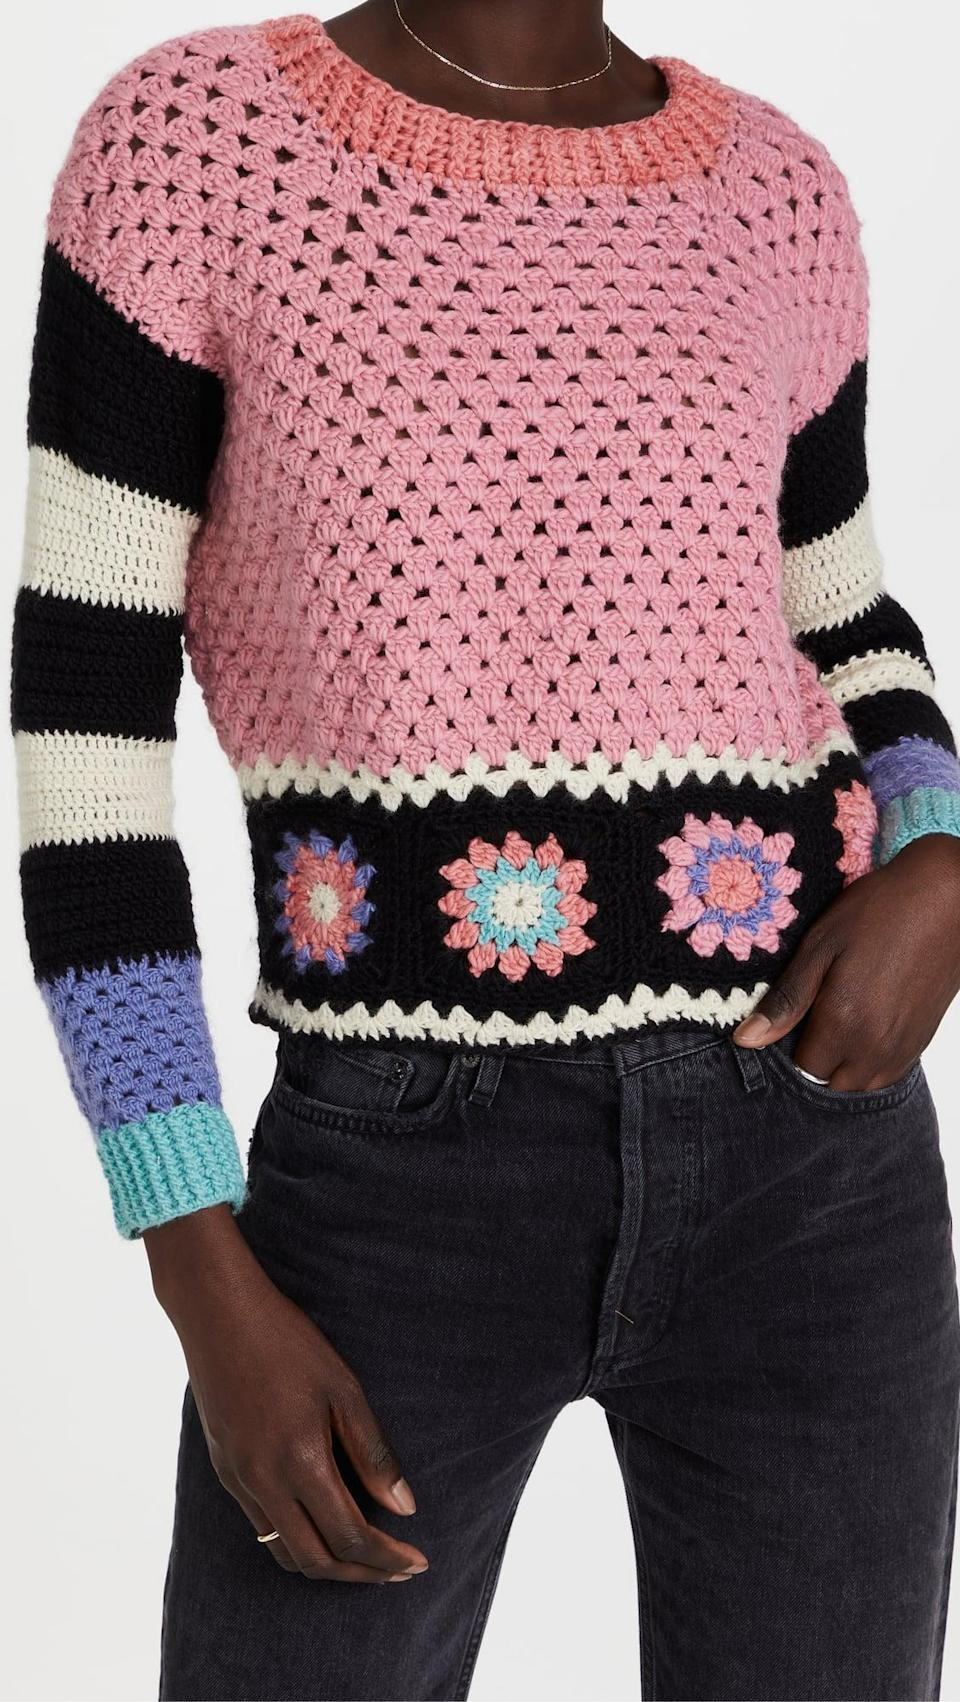 <p>This <span>Tach Clothing Ester Sweater</span> ($306) taps into the embellished crochet trend, so it'll be sure to get her noticed. We love the flower insertions at the bottom and the colorblock print on the sleeves.</p>